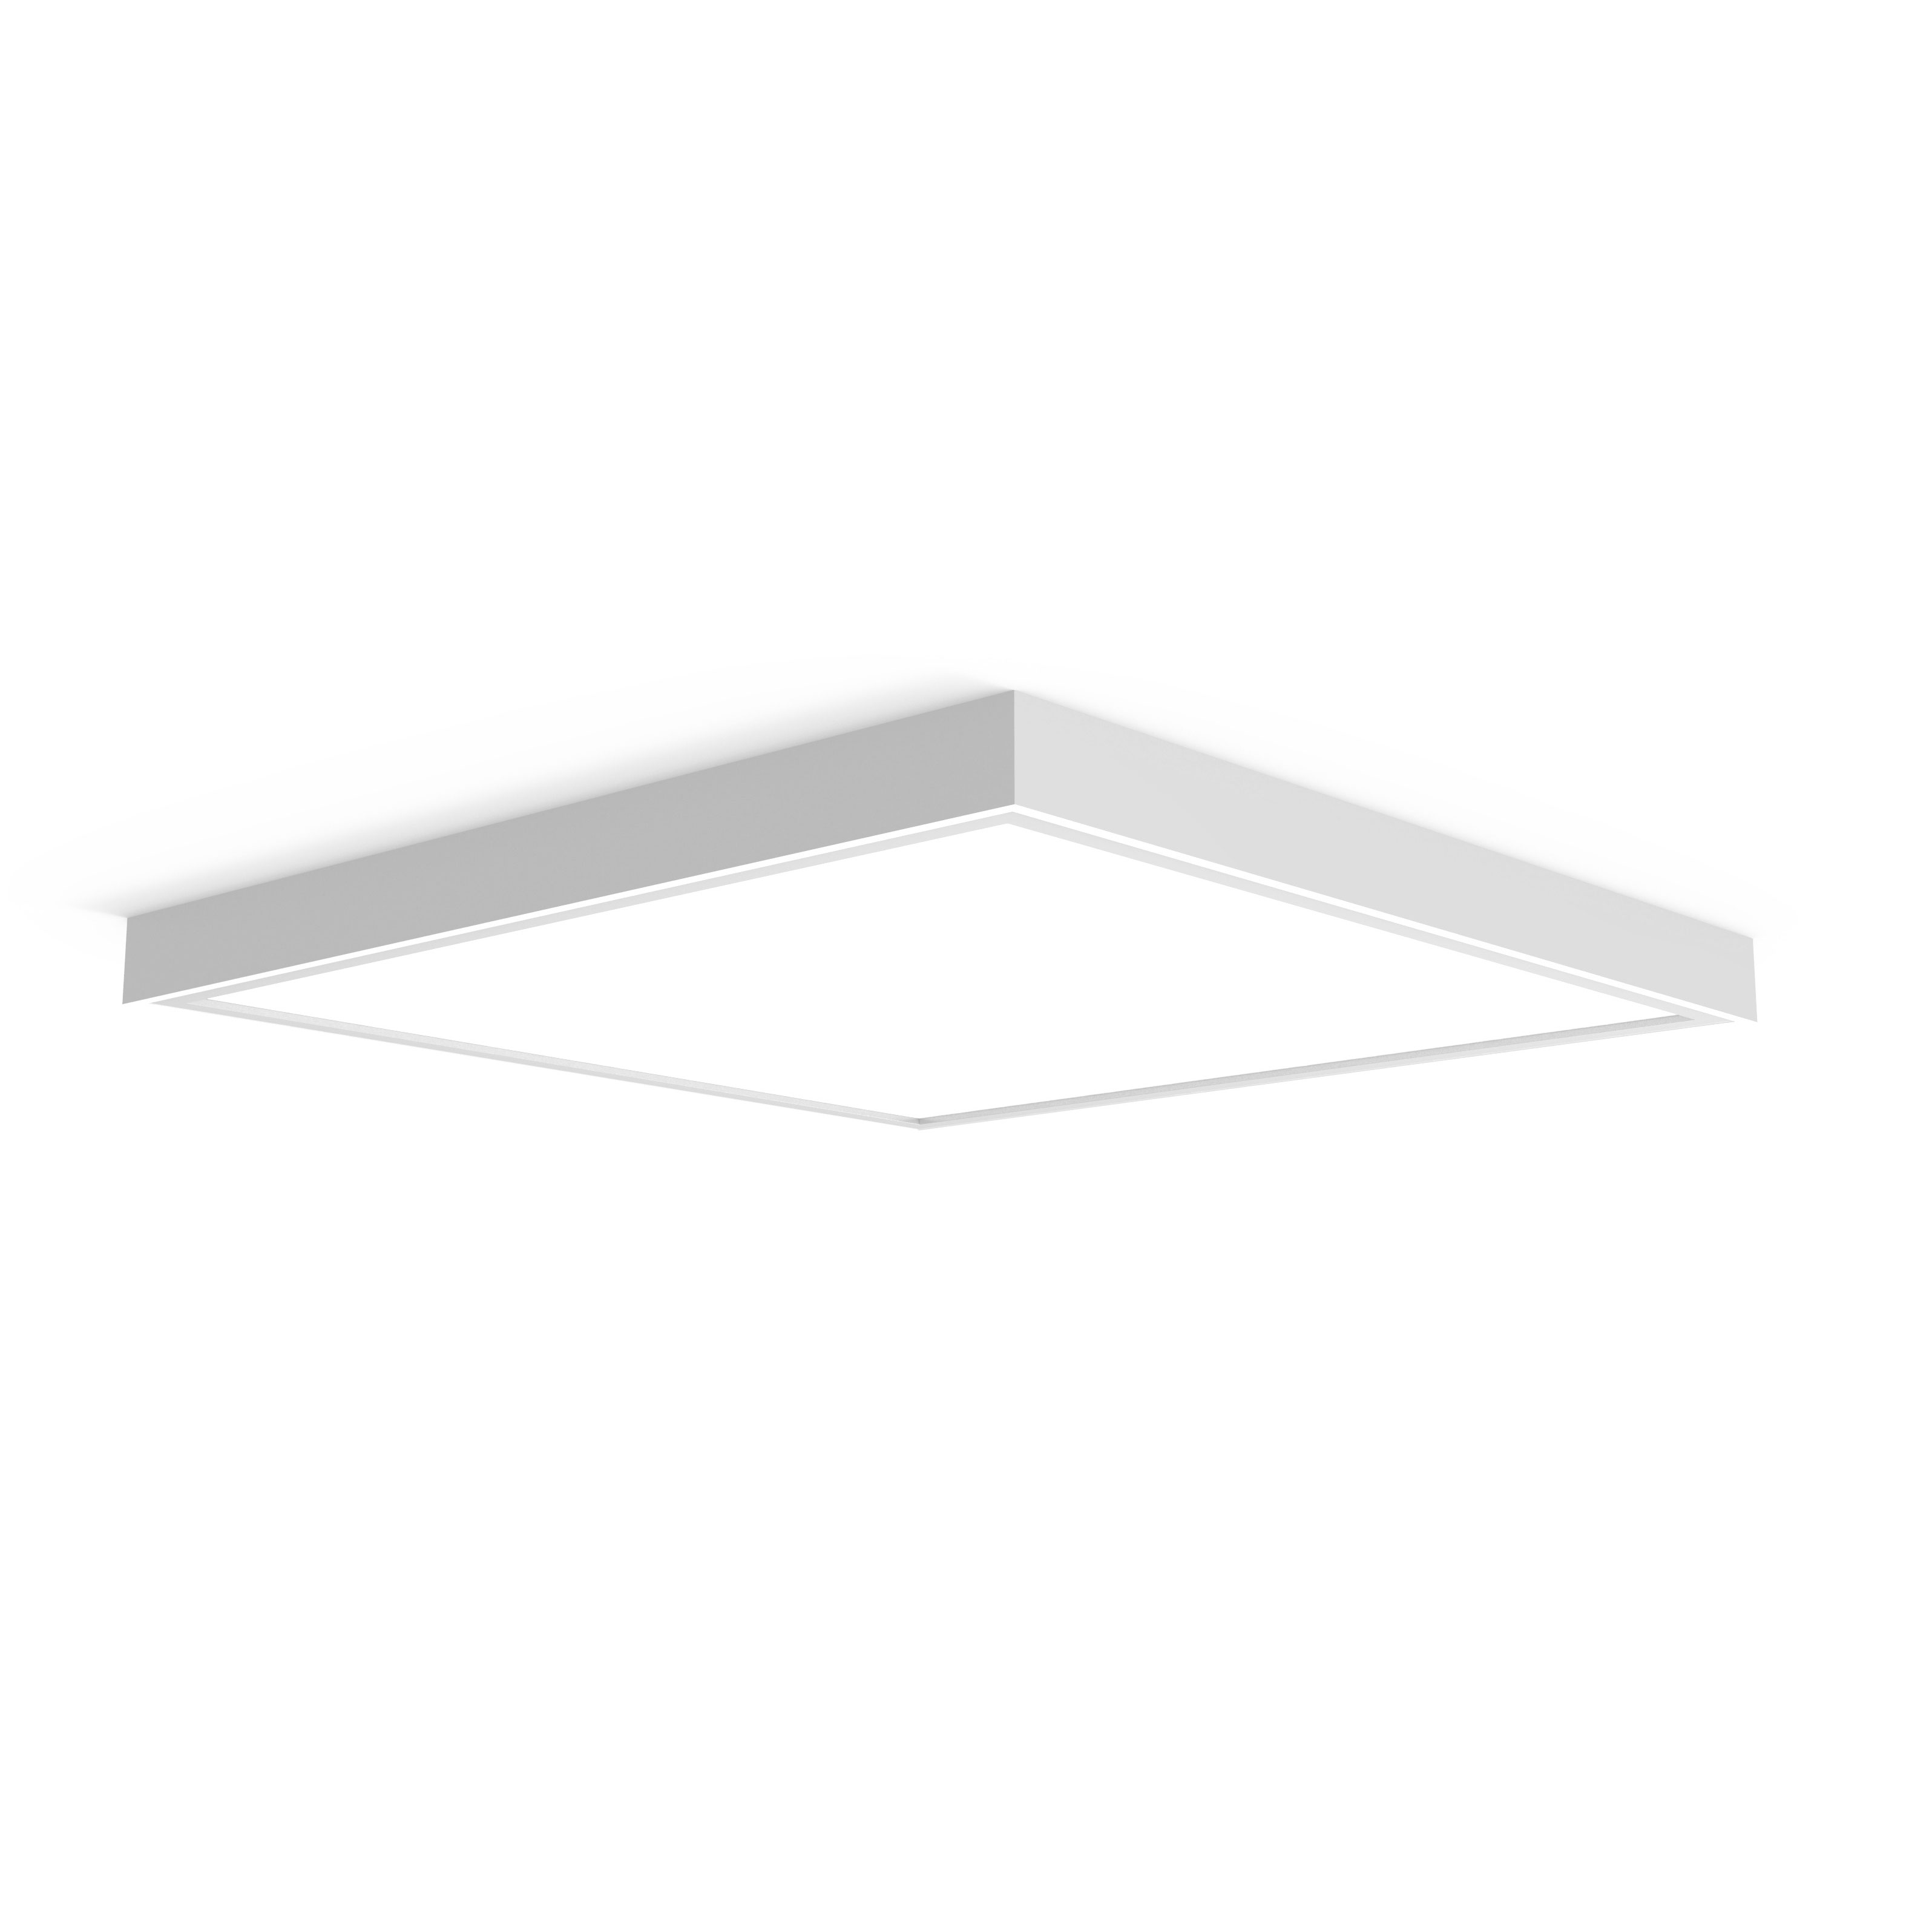 LED PANEL SURFACE MOUNTING KIT 600X600